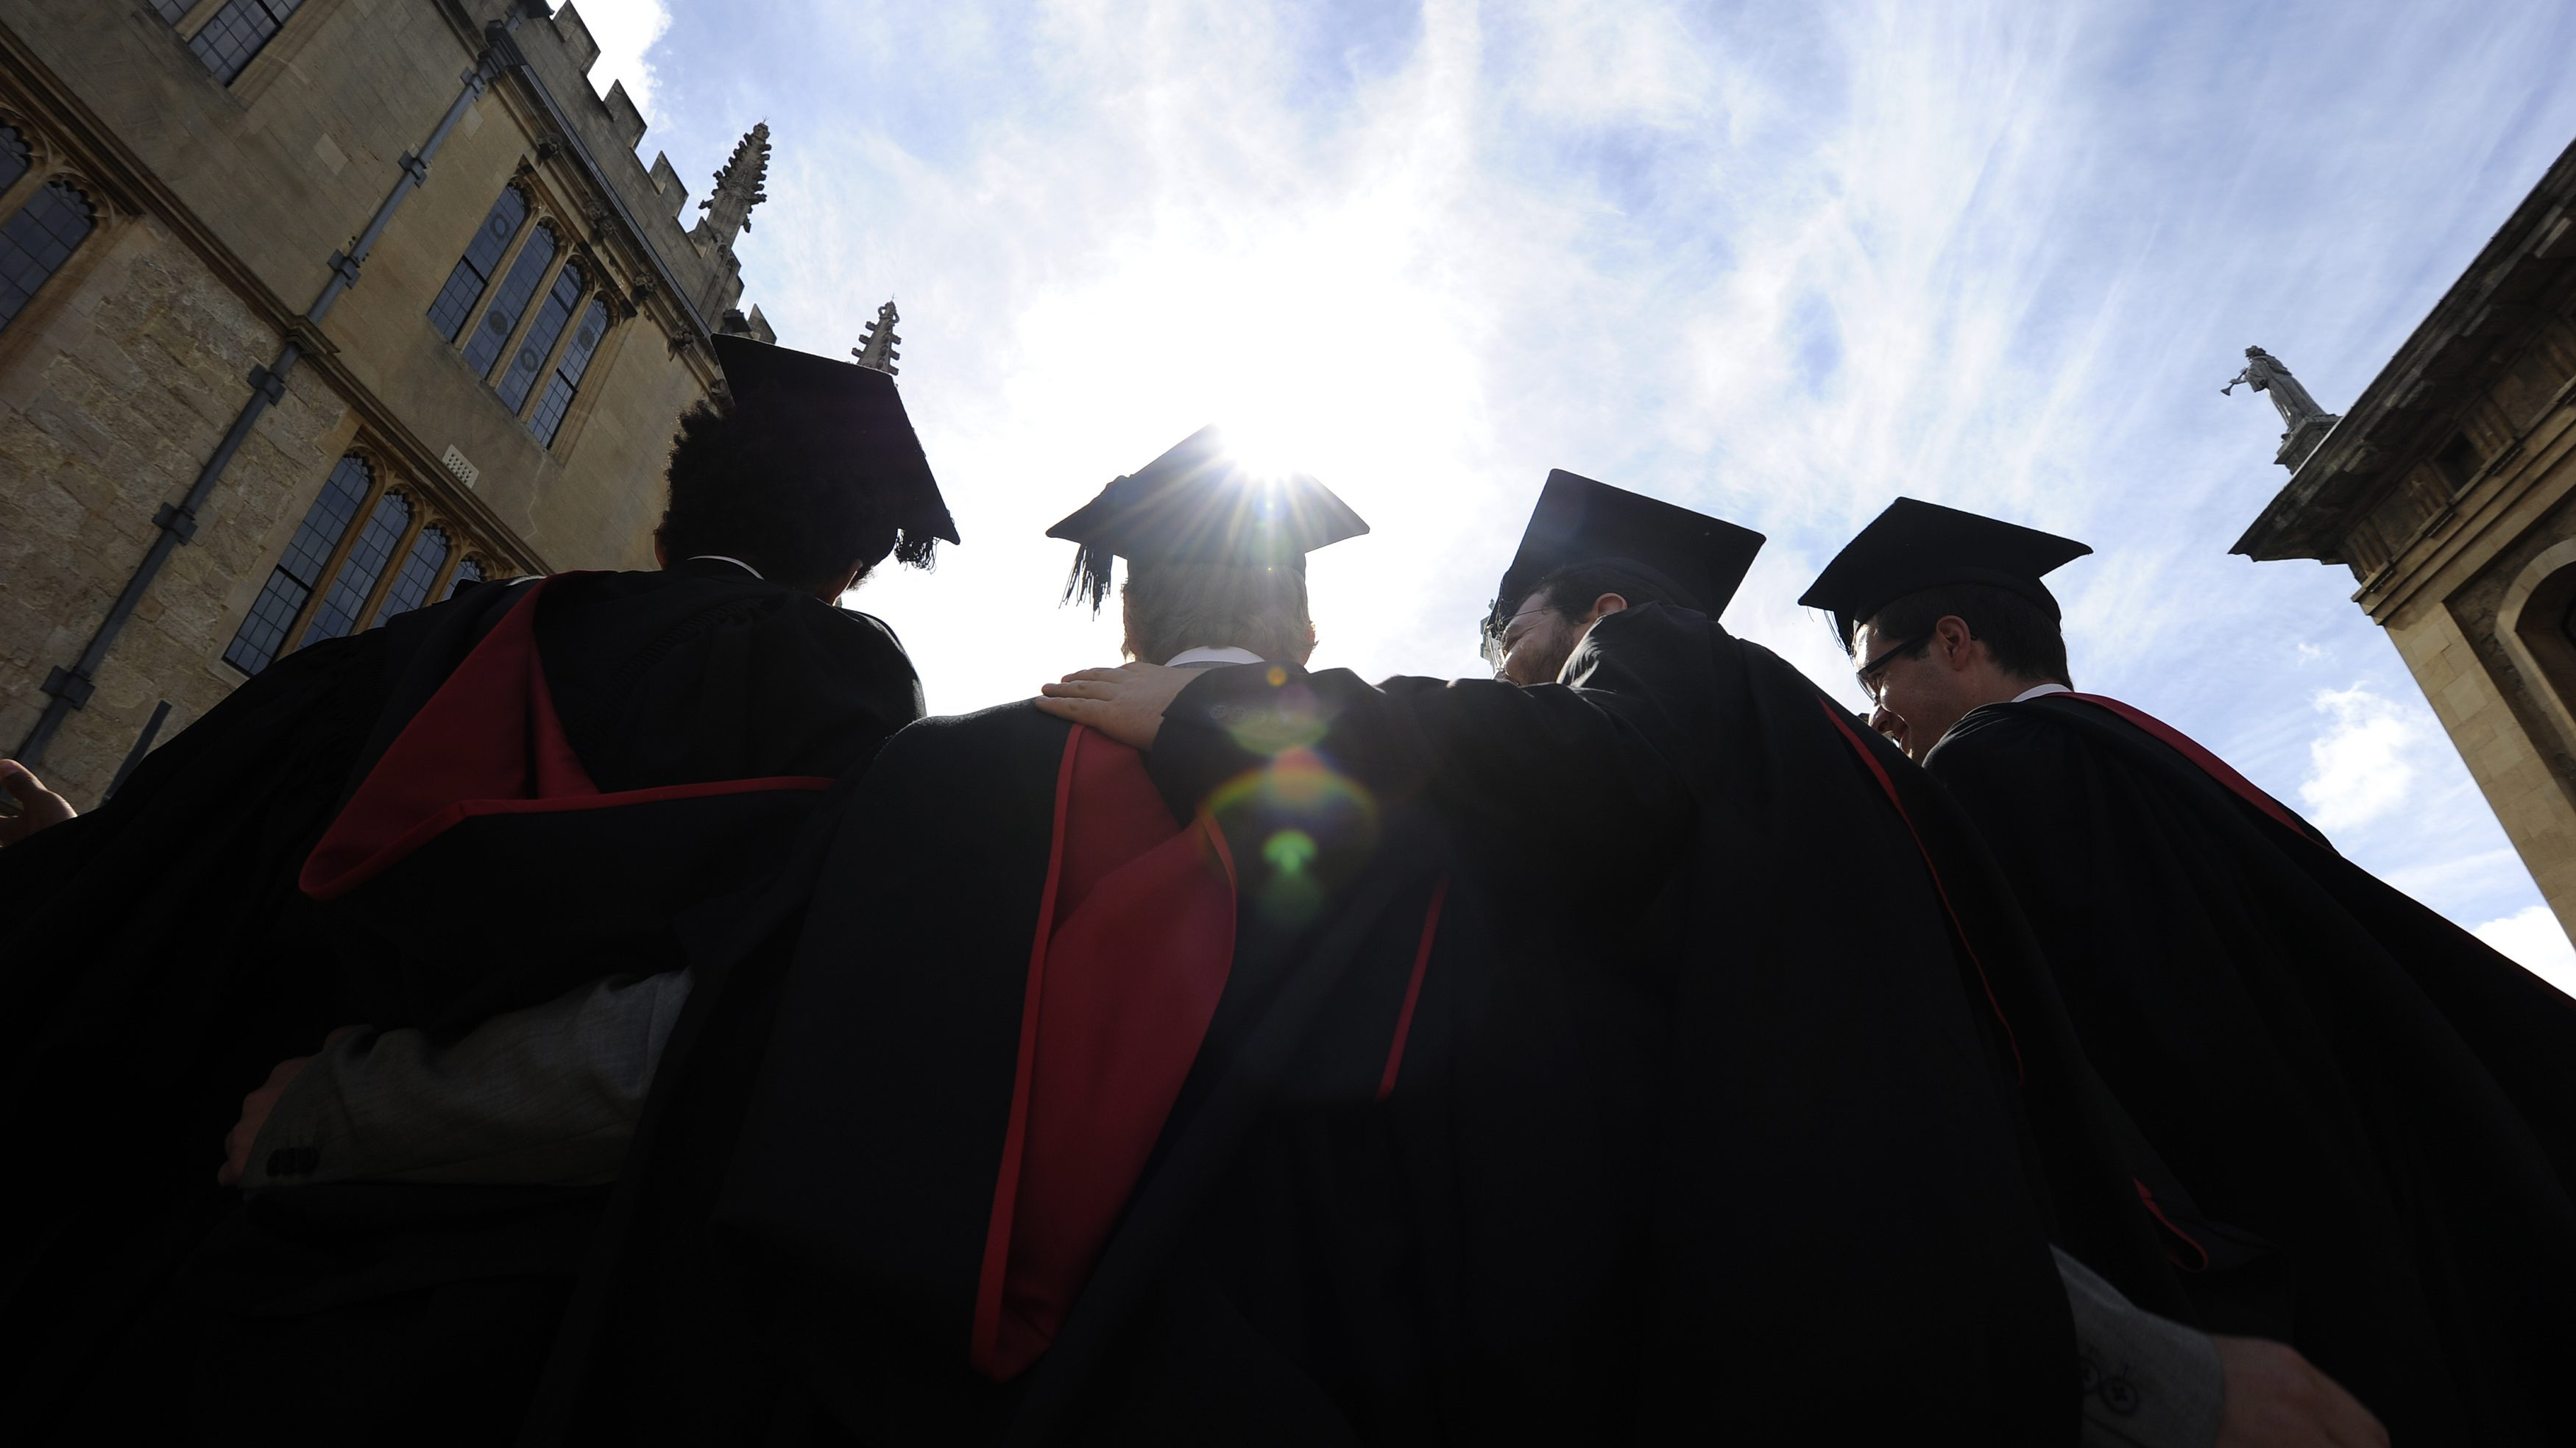 A group of graduates gather outside the Sheldonian Theatre after a graduation ceremony at Oxford University England